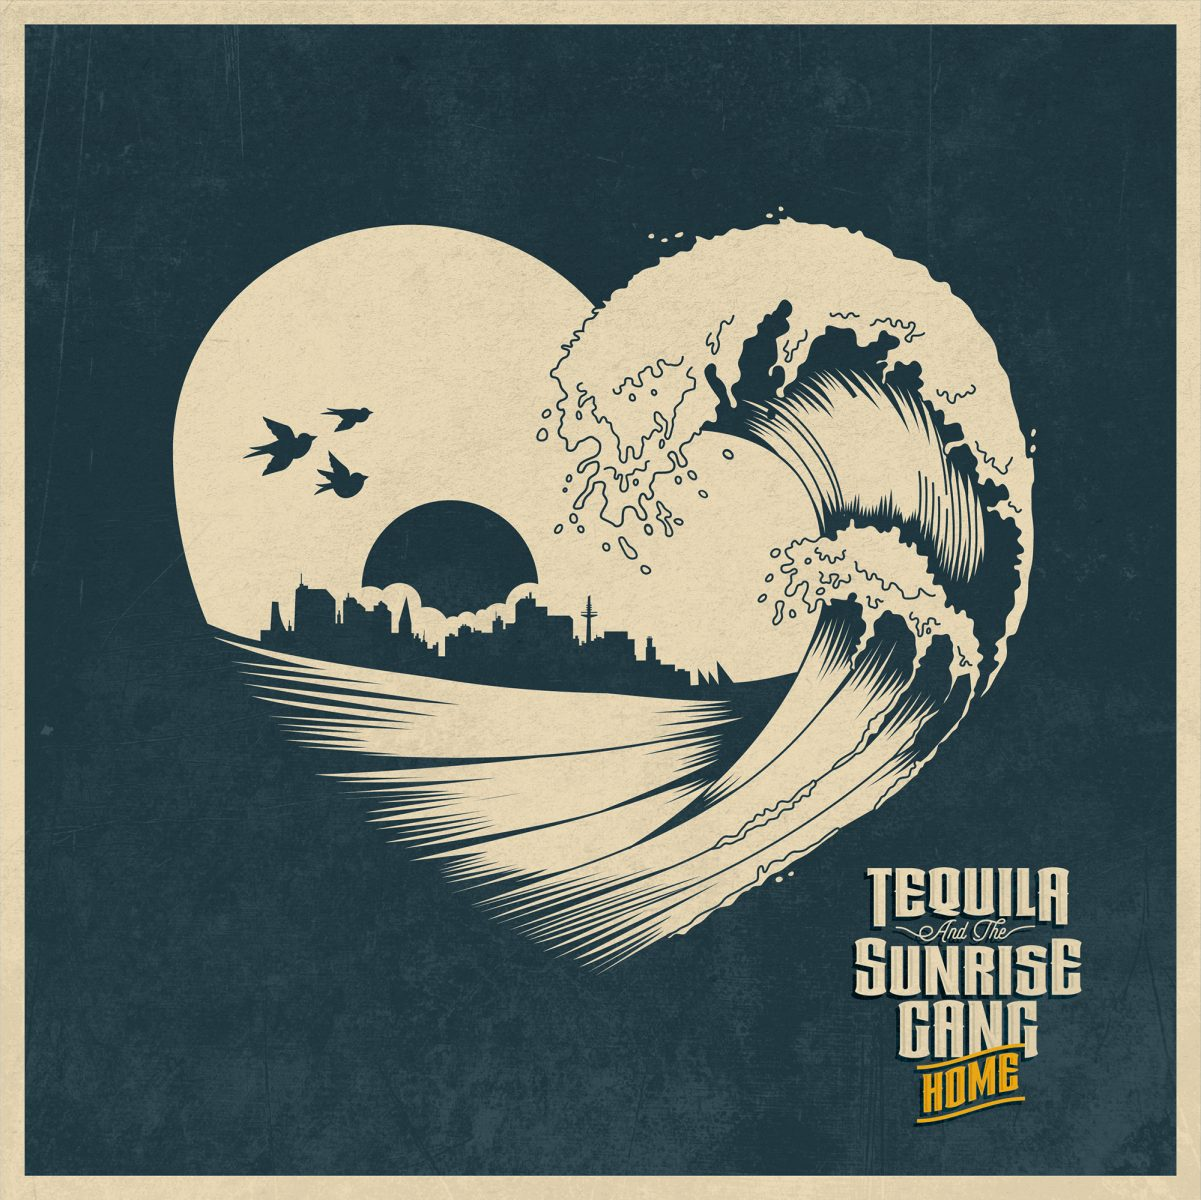 tequila-and-the-sunrise-gang-home-album-review